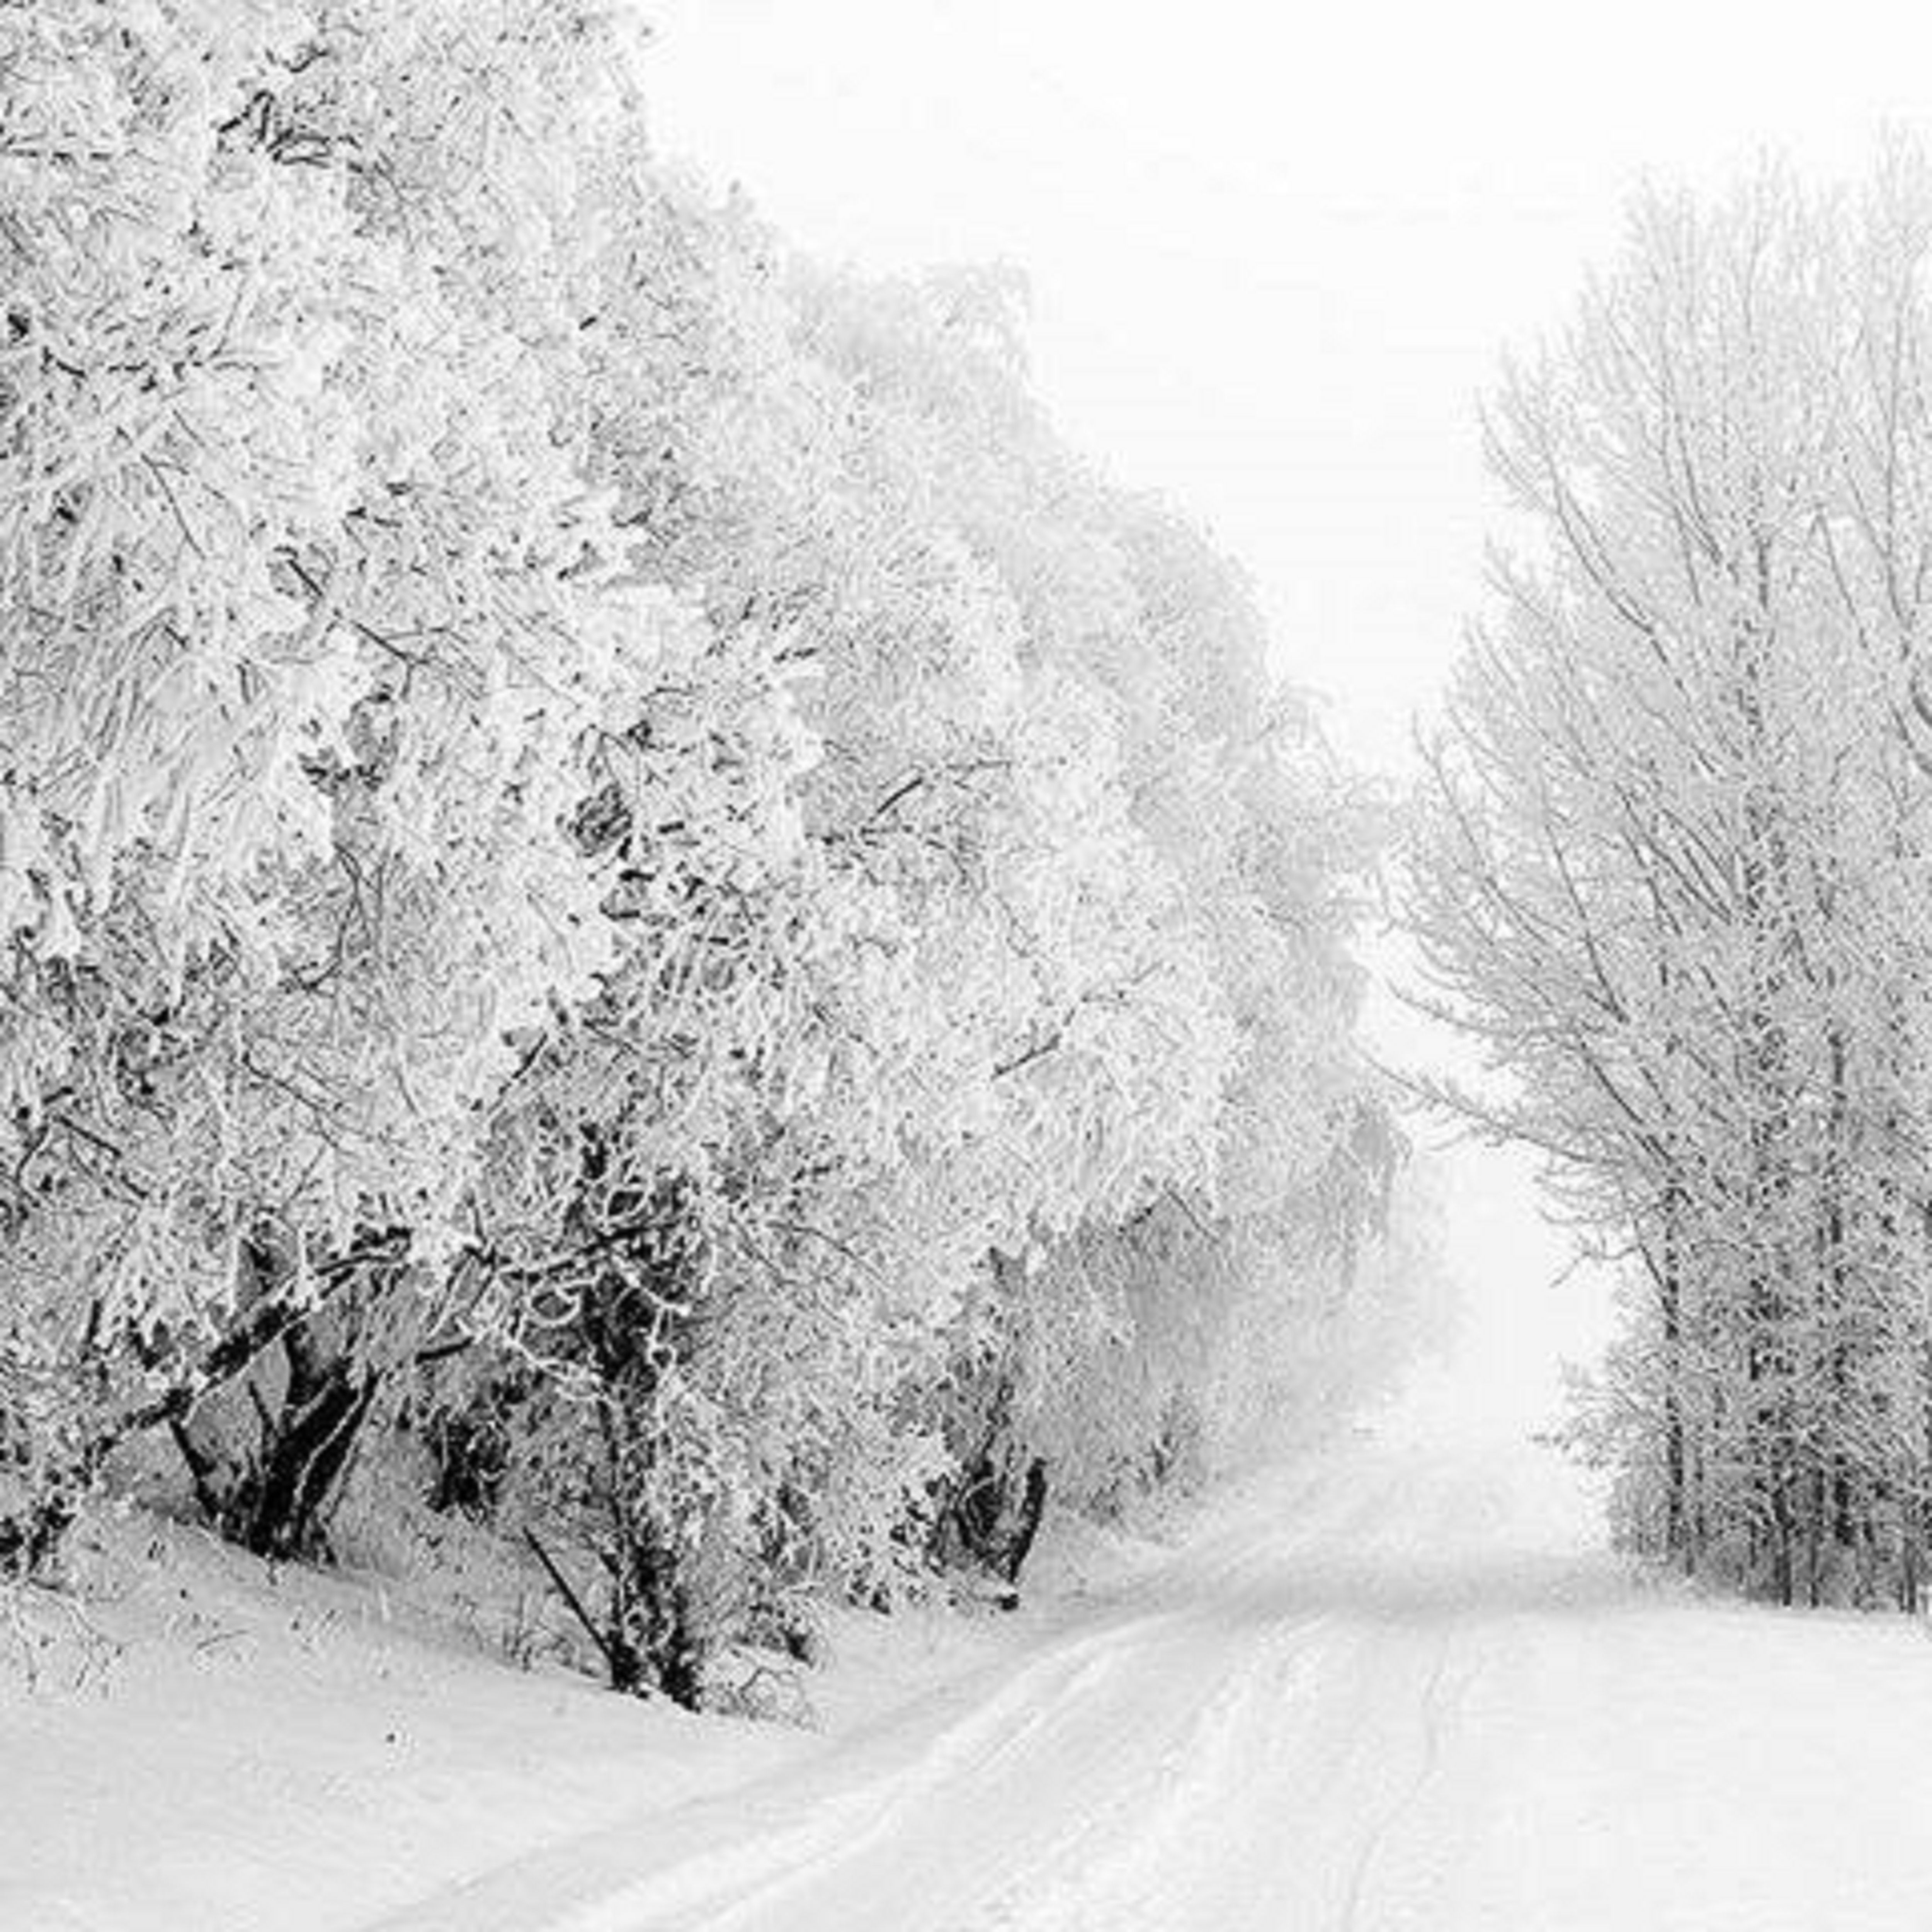 winter and snow trees - photo #31